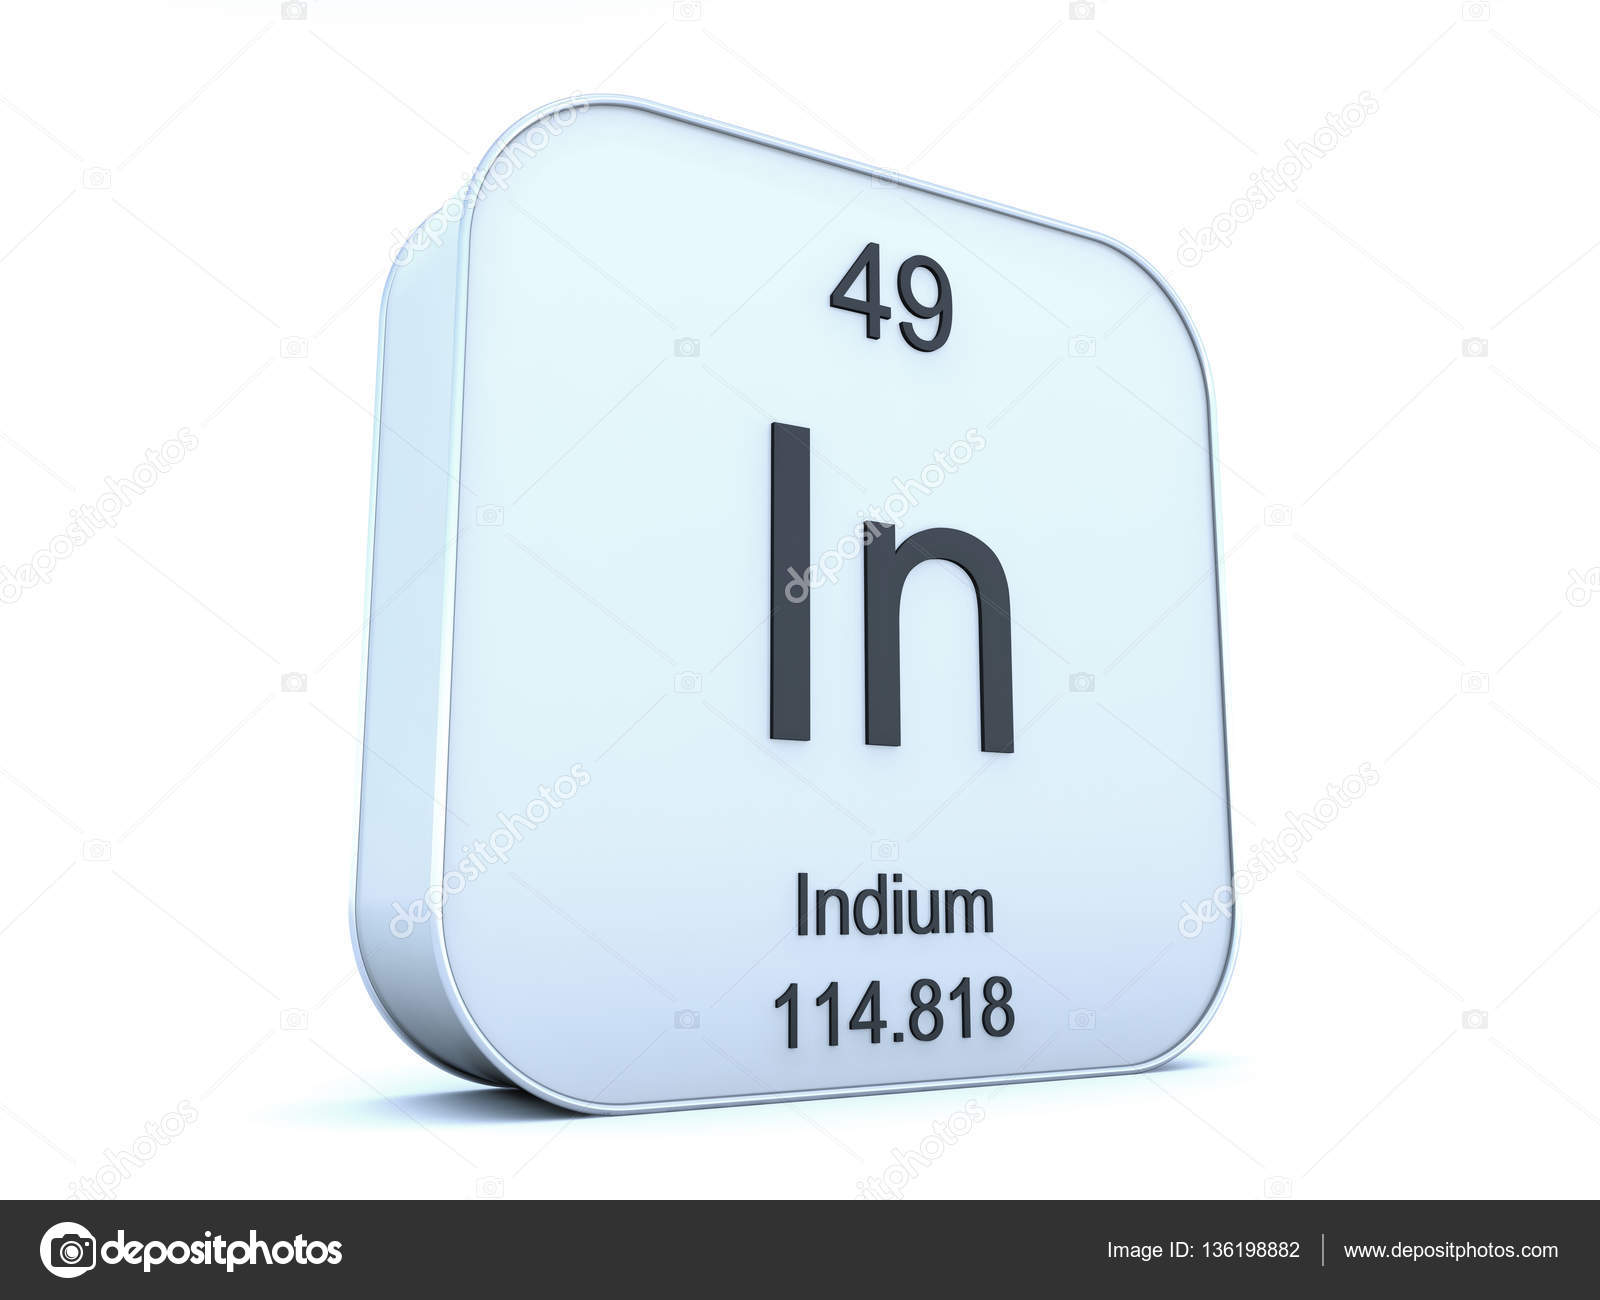 Indium element on white square icon stock photo conceptw indium element symbol from the periodic table on white rounded square icon photo by conceptw biocorpaavc Images